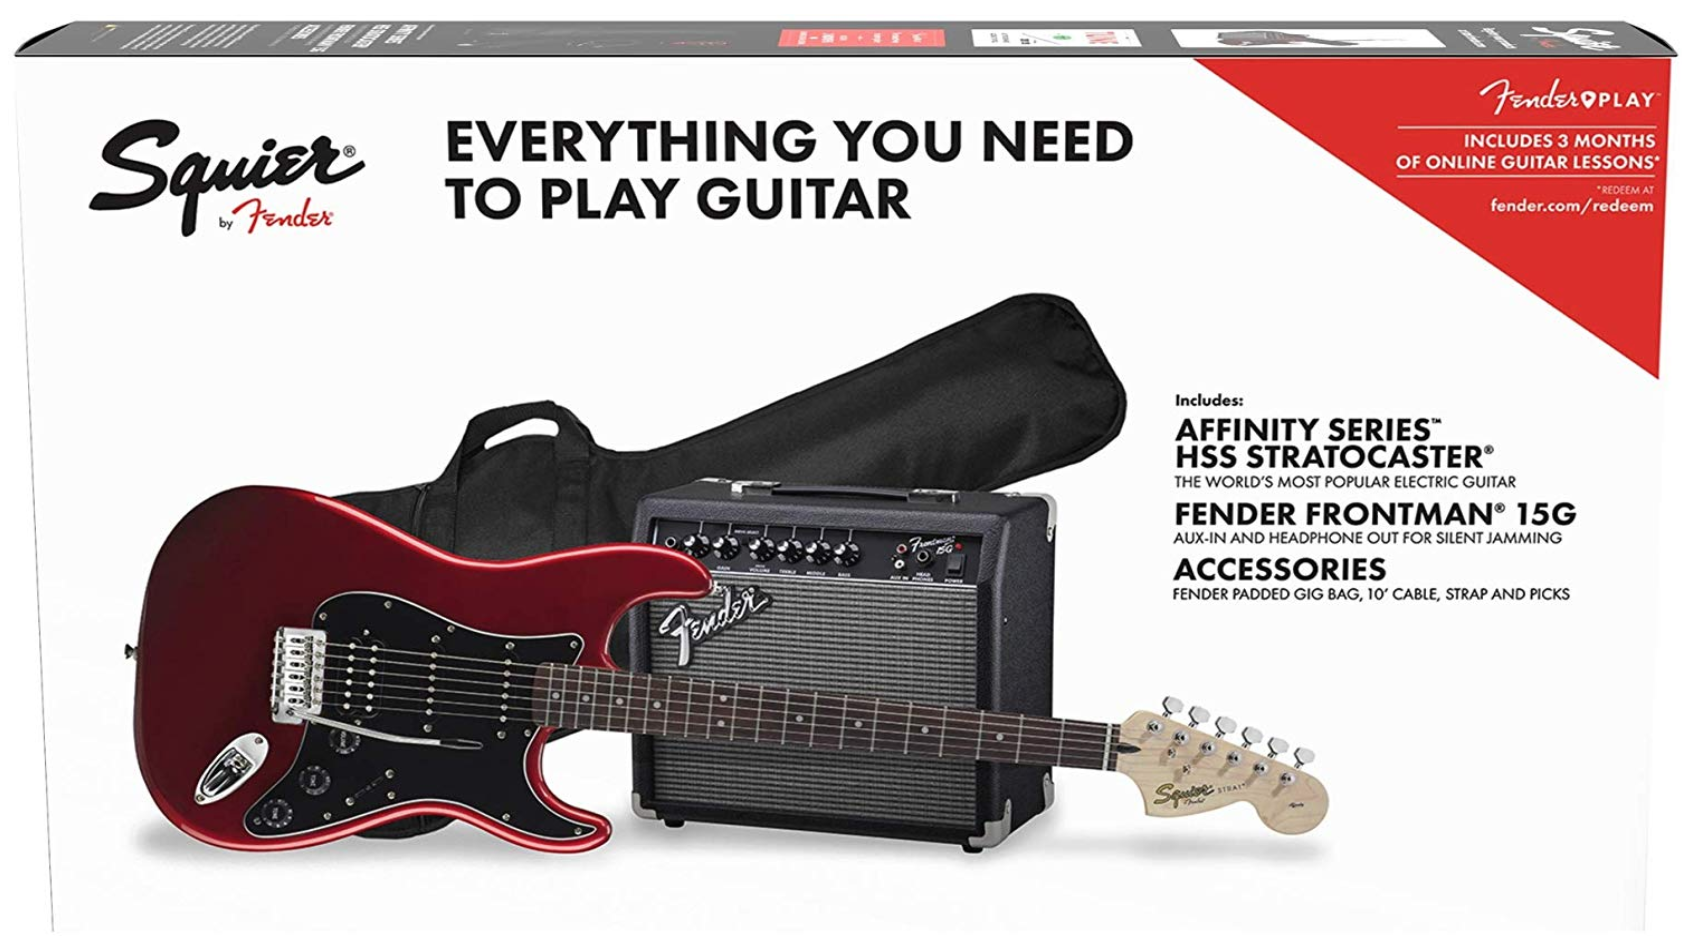 Fender Squire Player pack